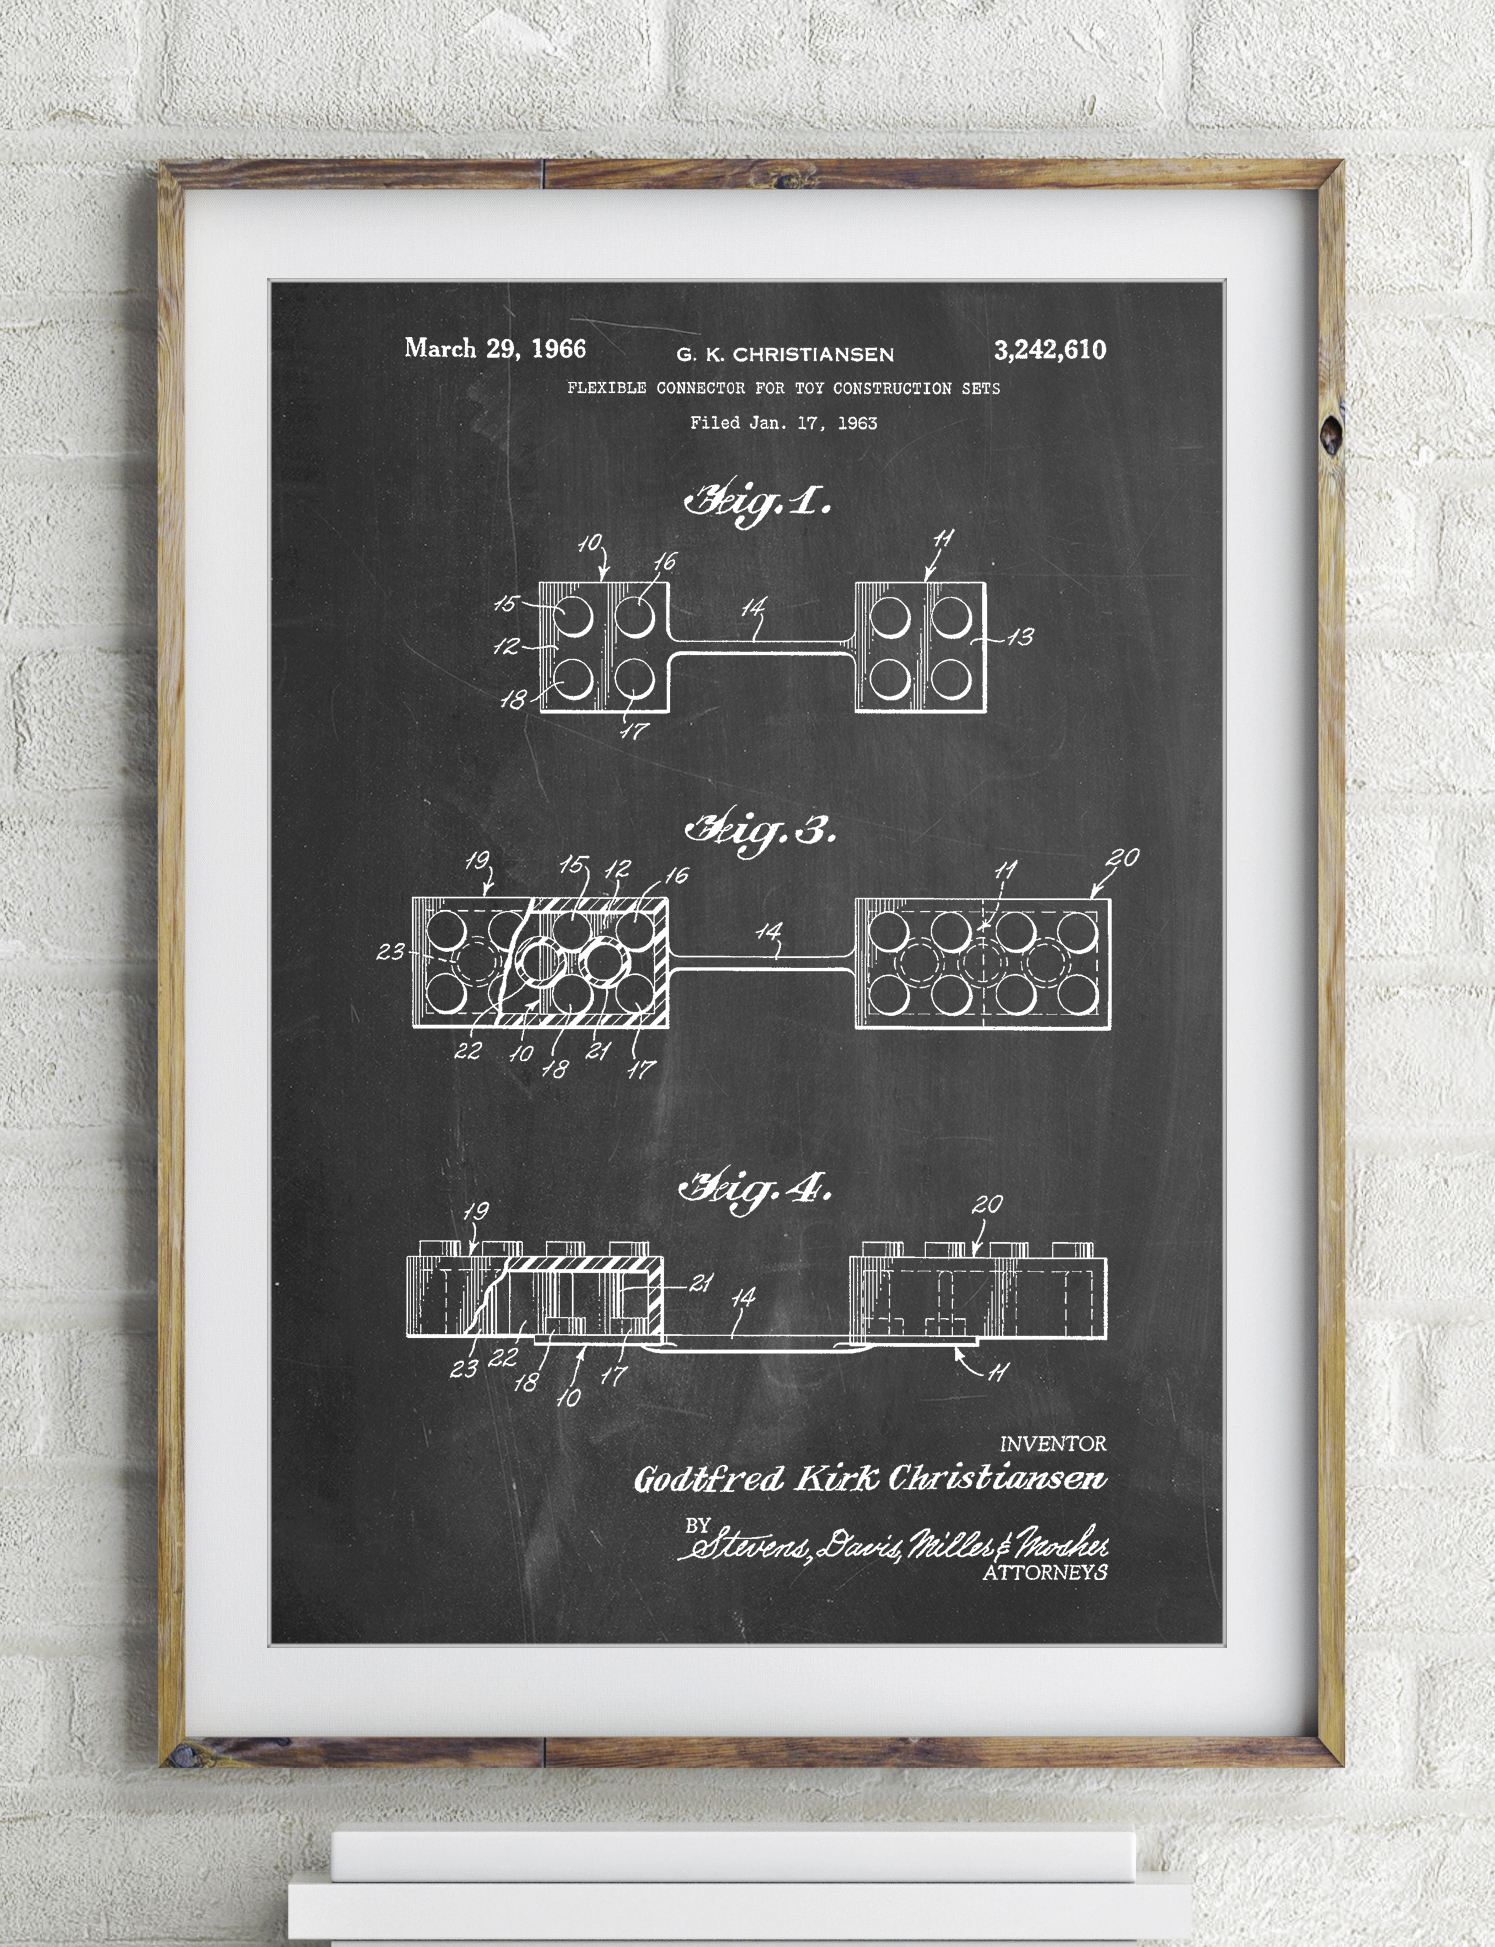 Lego Flexible Connector Patent Poster